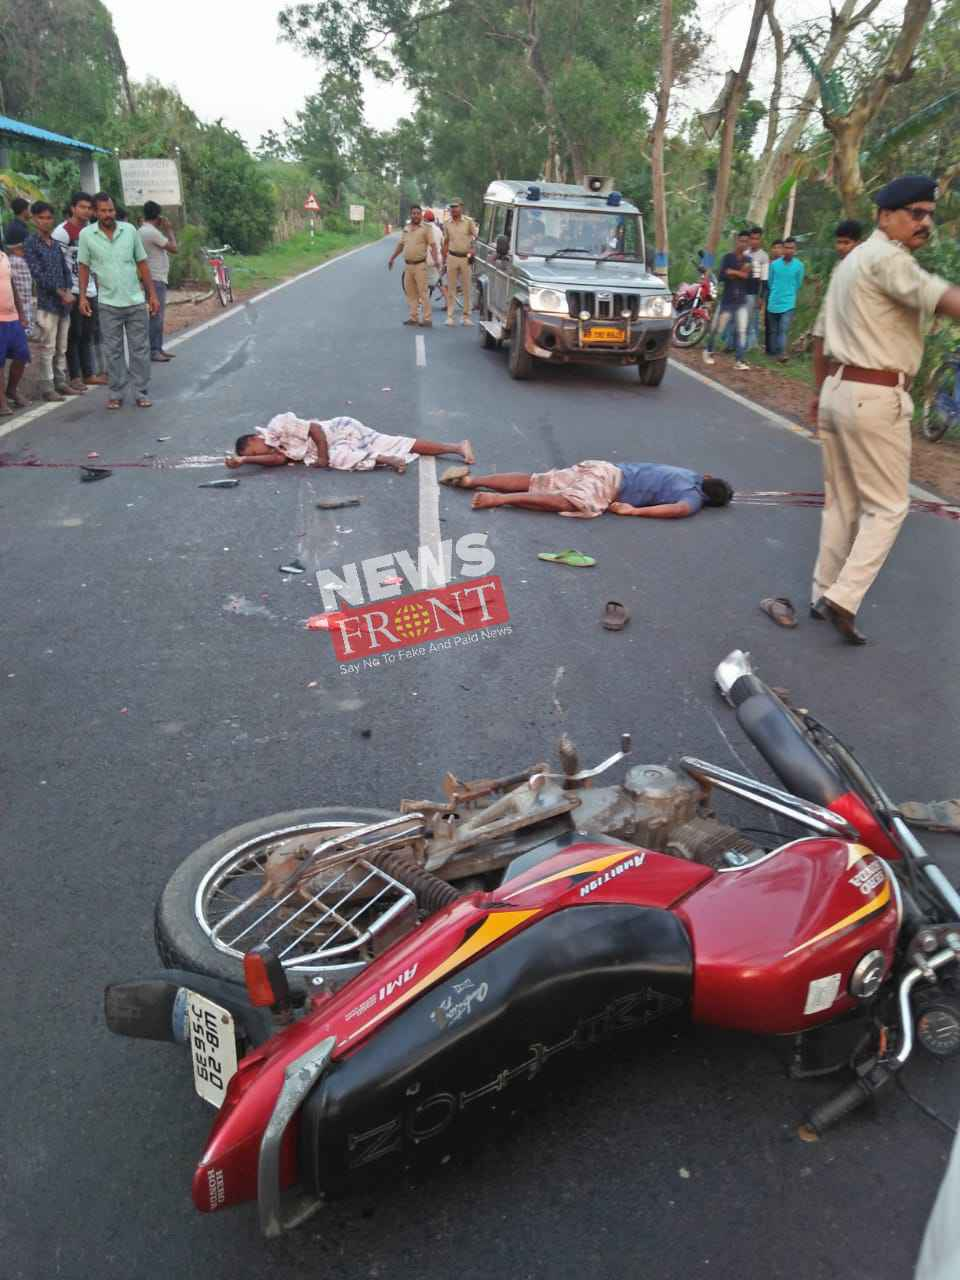 Death of two people at road accident